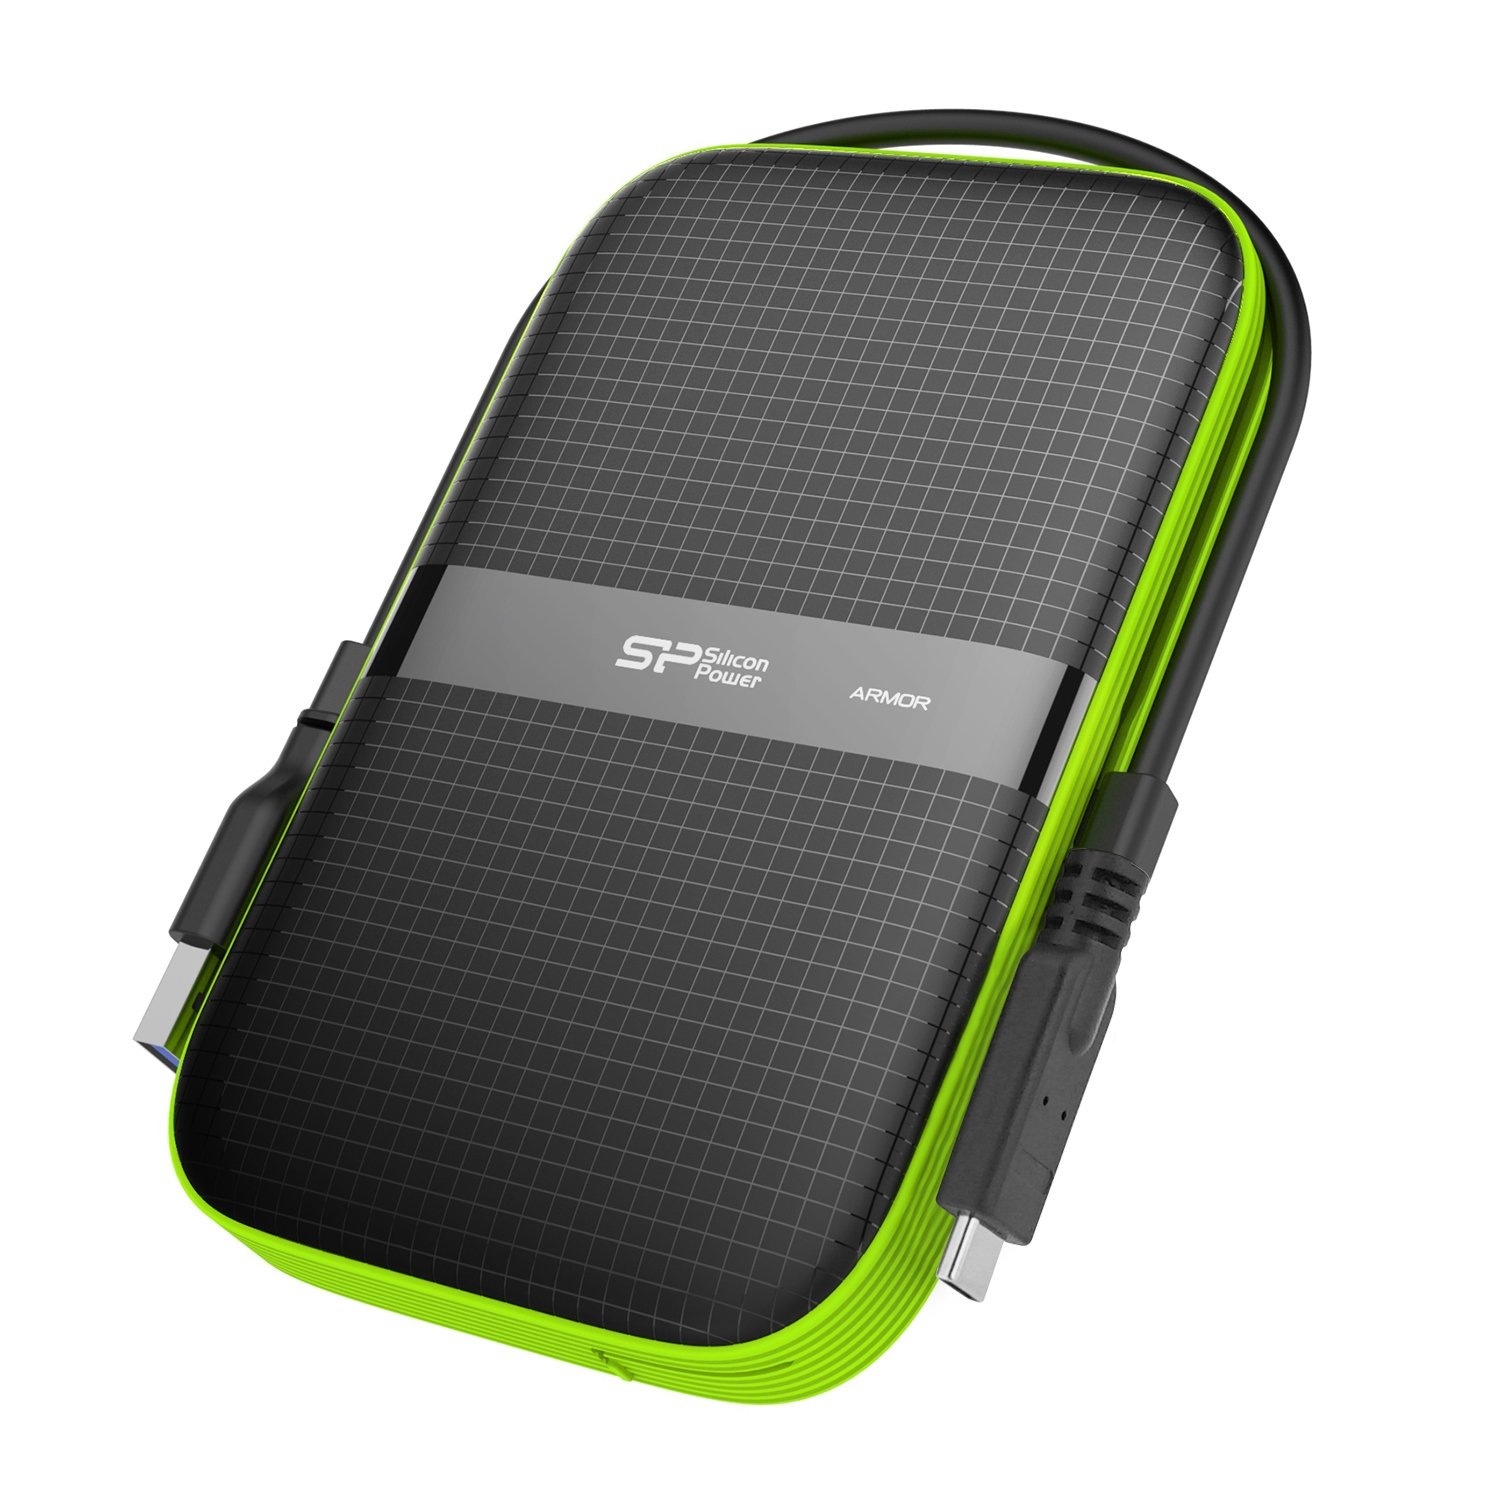 Silicon Power 2TB Type C External Hard Drive USB 3.0 Rugged Armor A60 Shockproof/Water-Resistant, Dual Cables Included (Type C to Type A & Type A to Type A) by Silicon Power